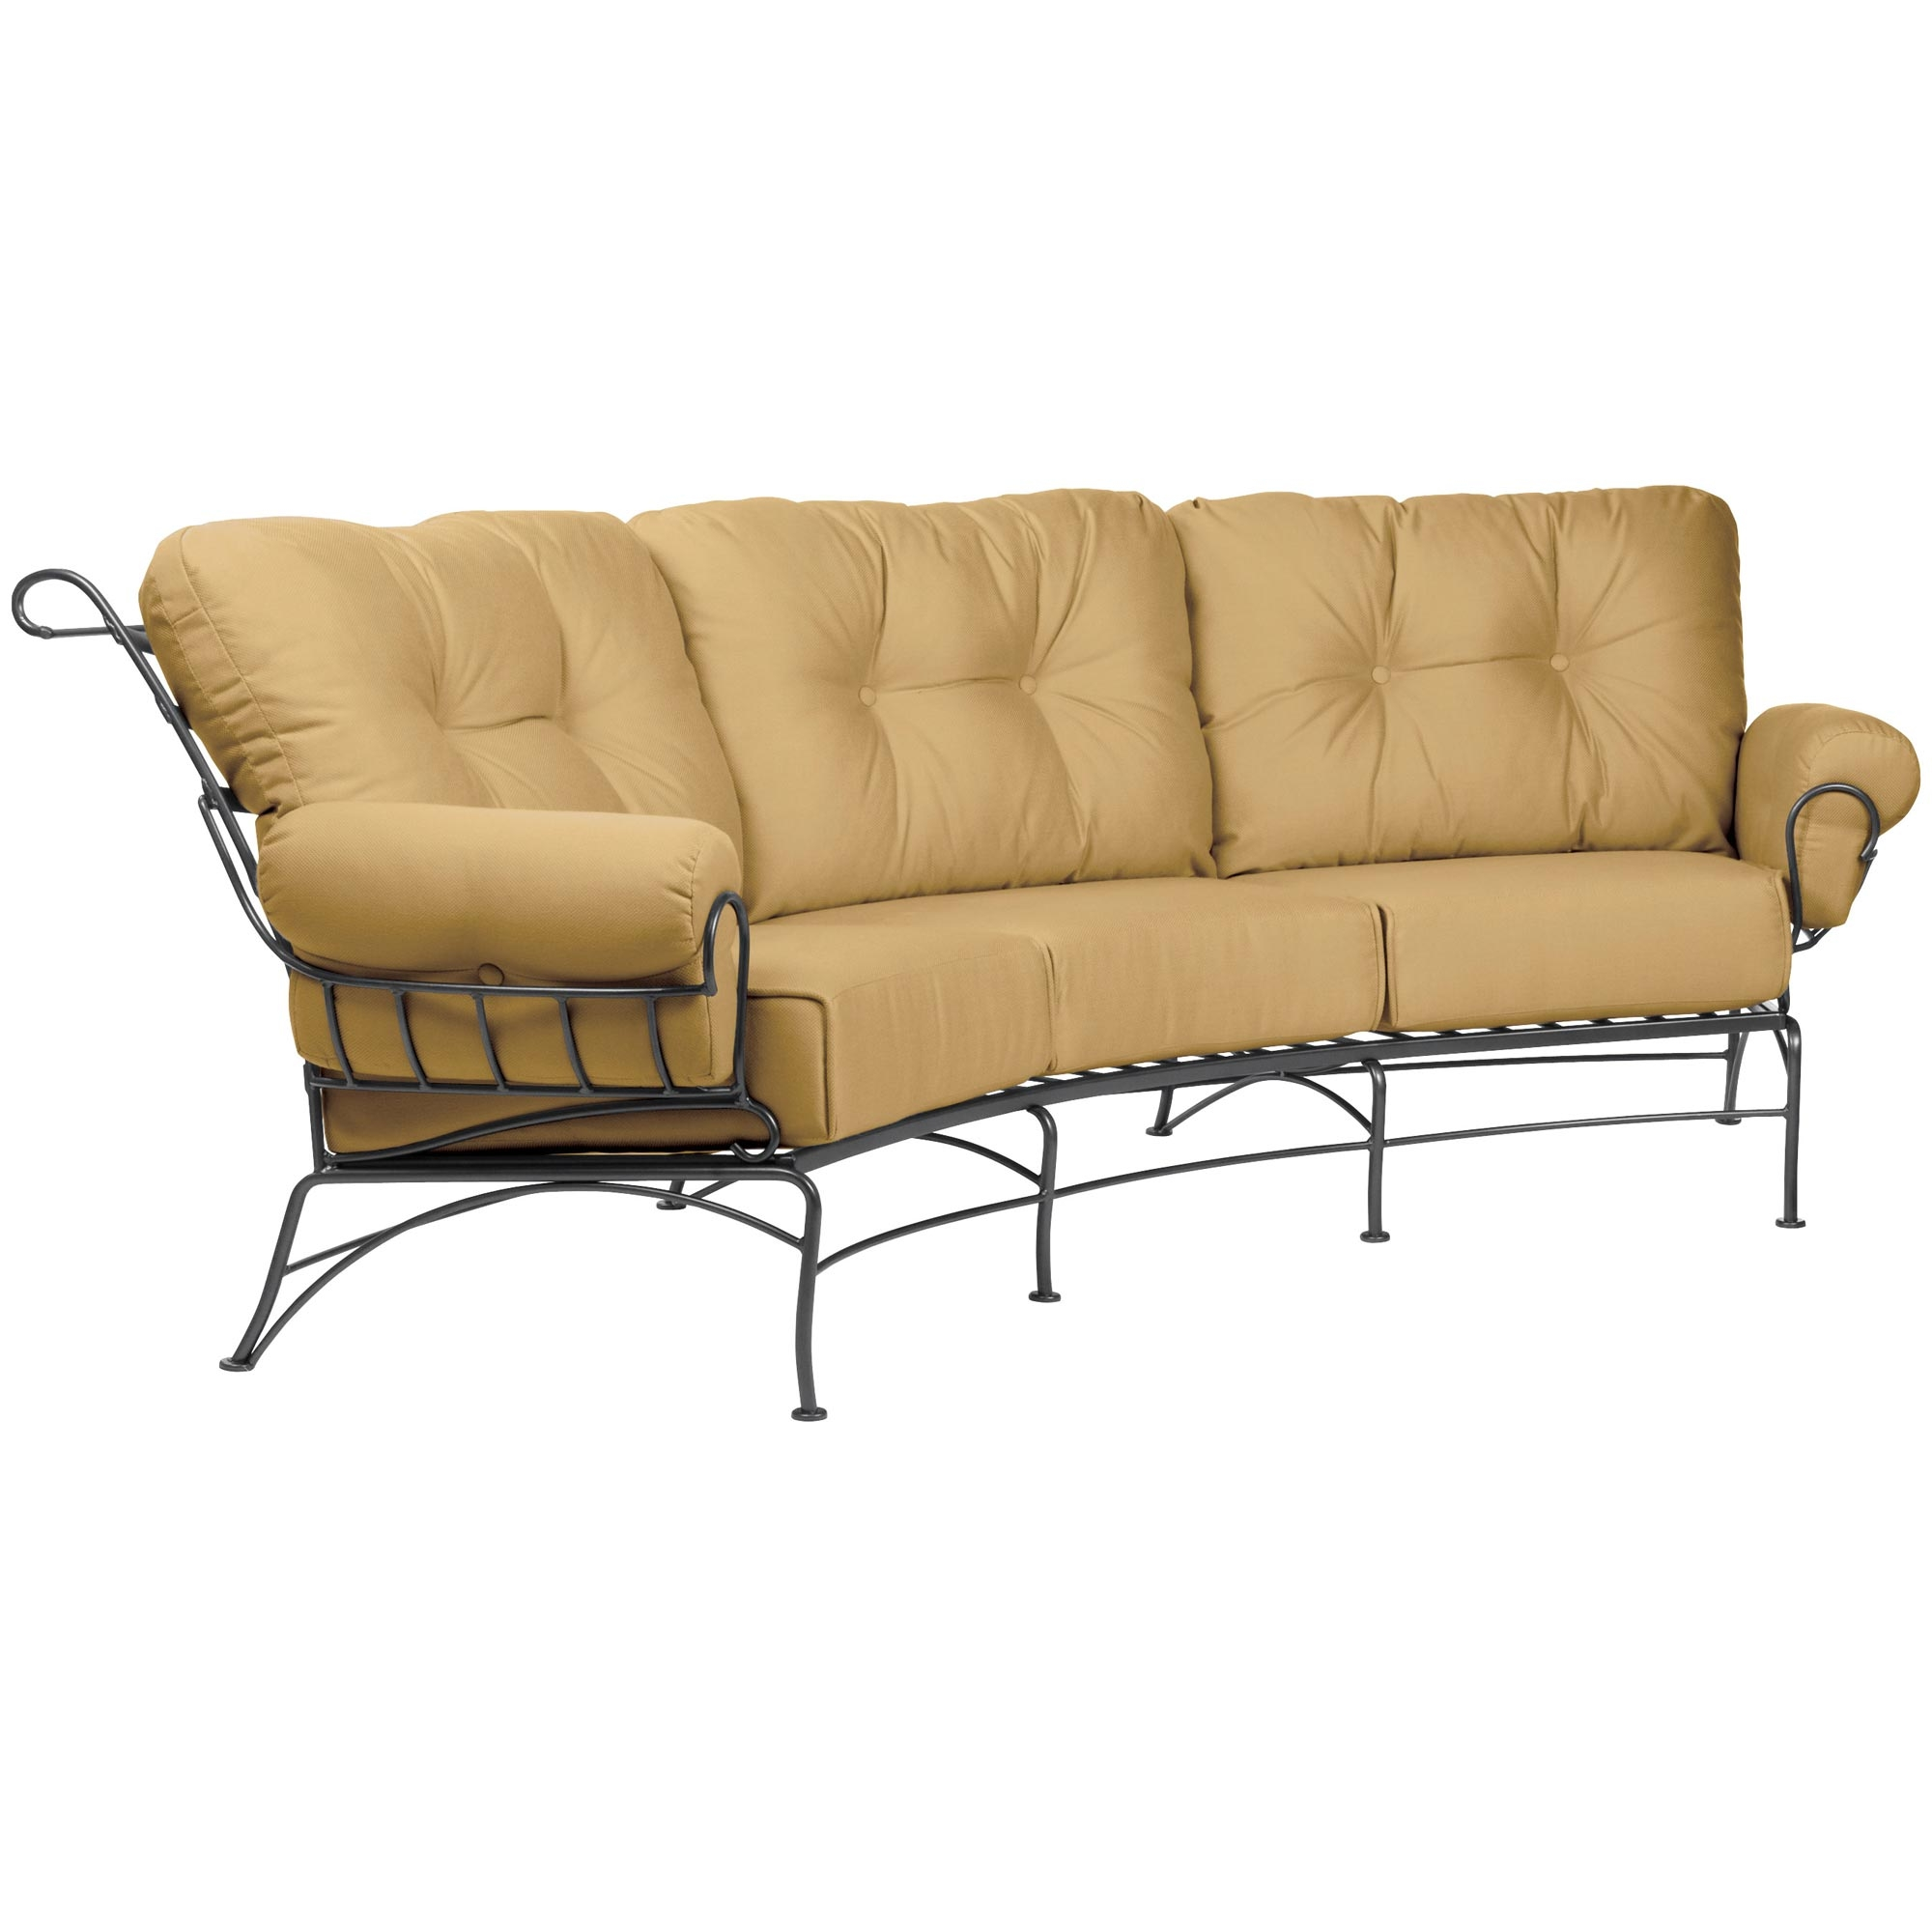 Sofa Online Purchase Buy The Terrace Crescent Sofa For Your Outdoor Living Area Online